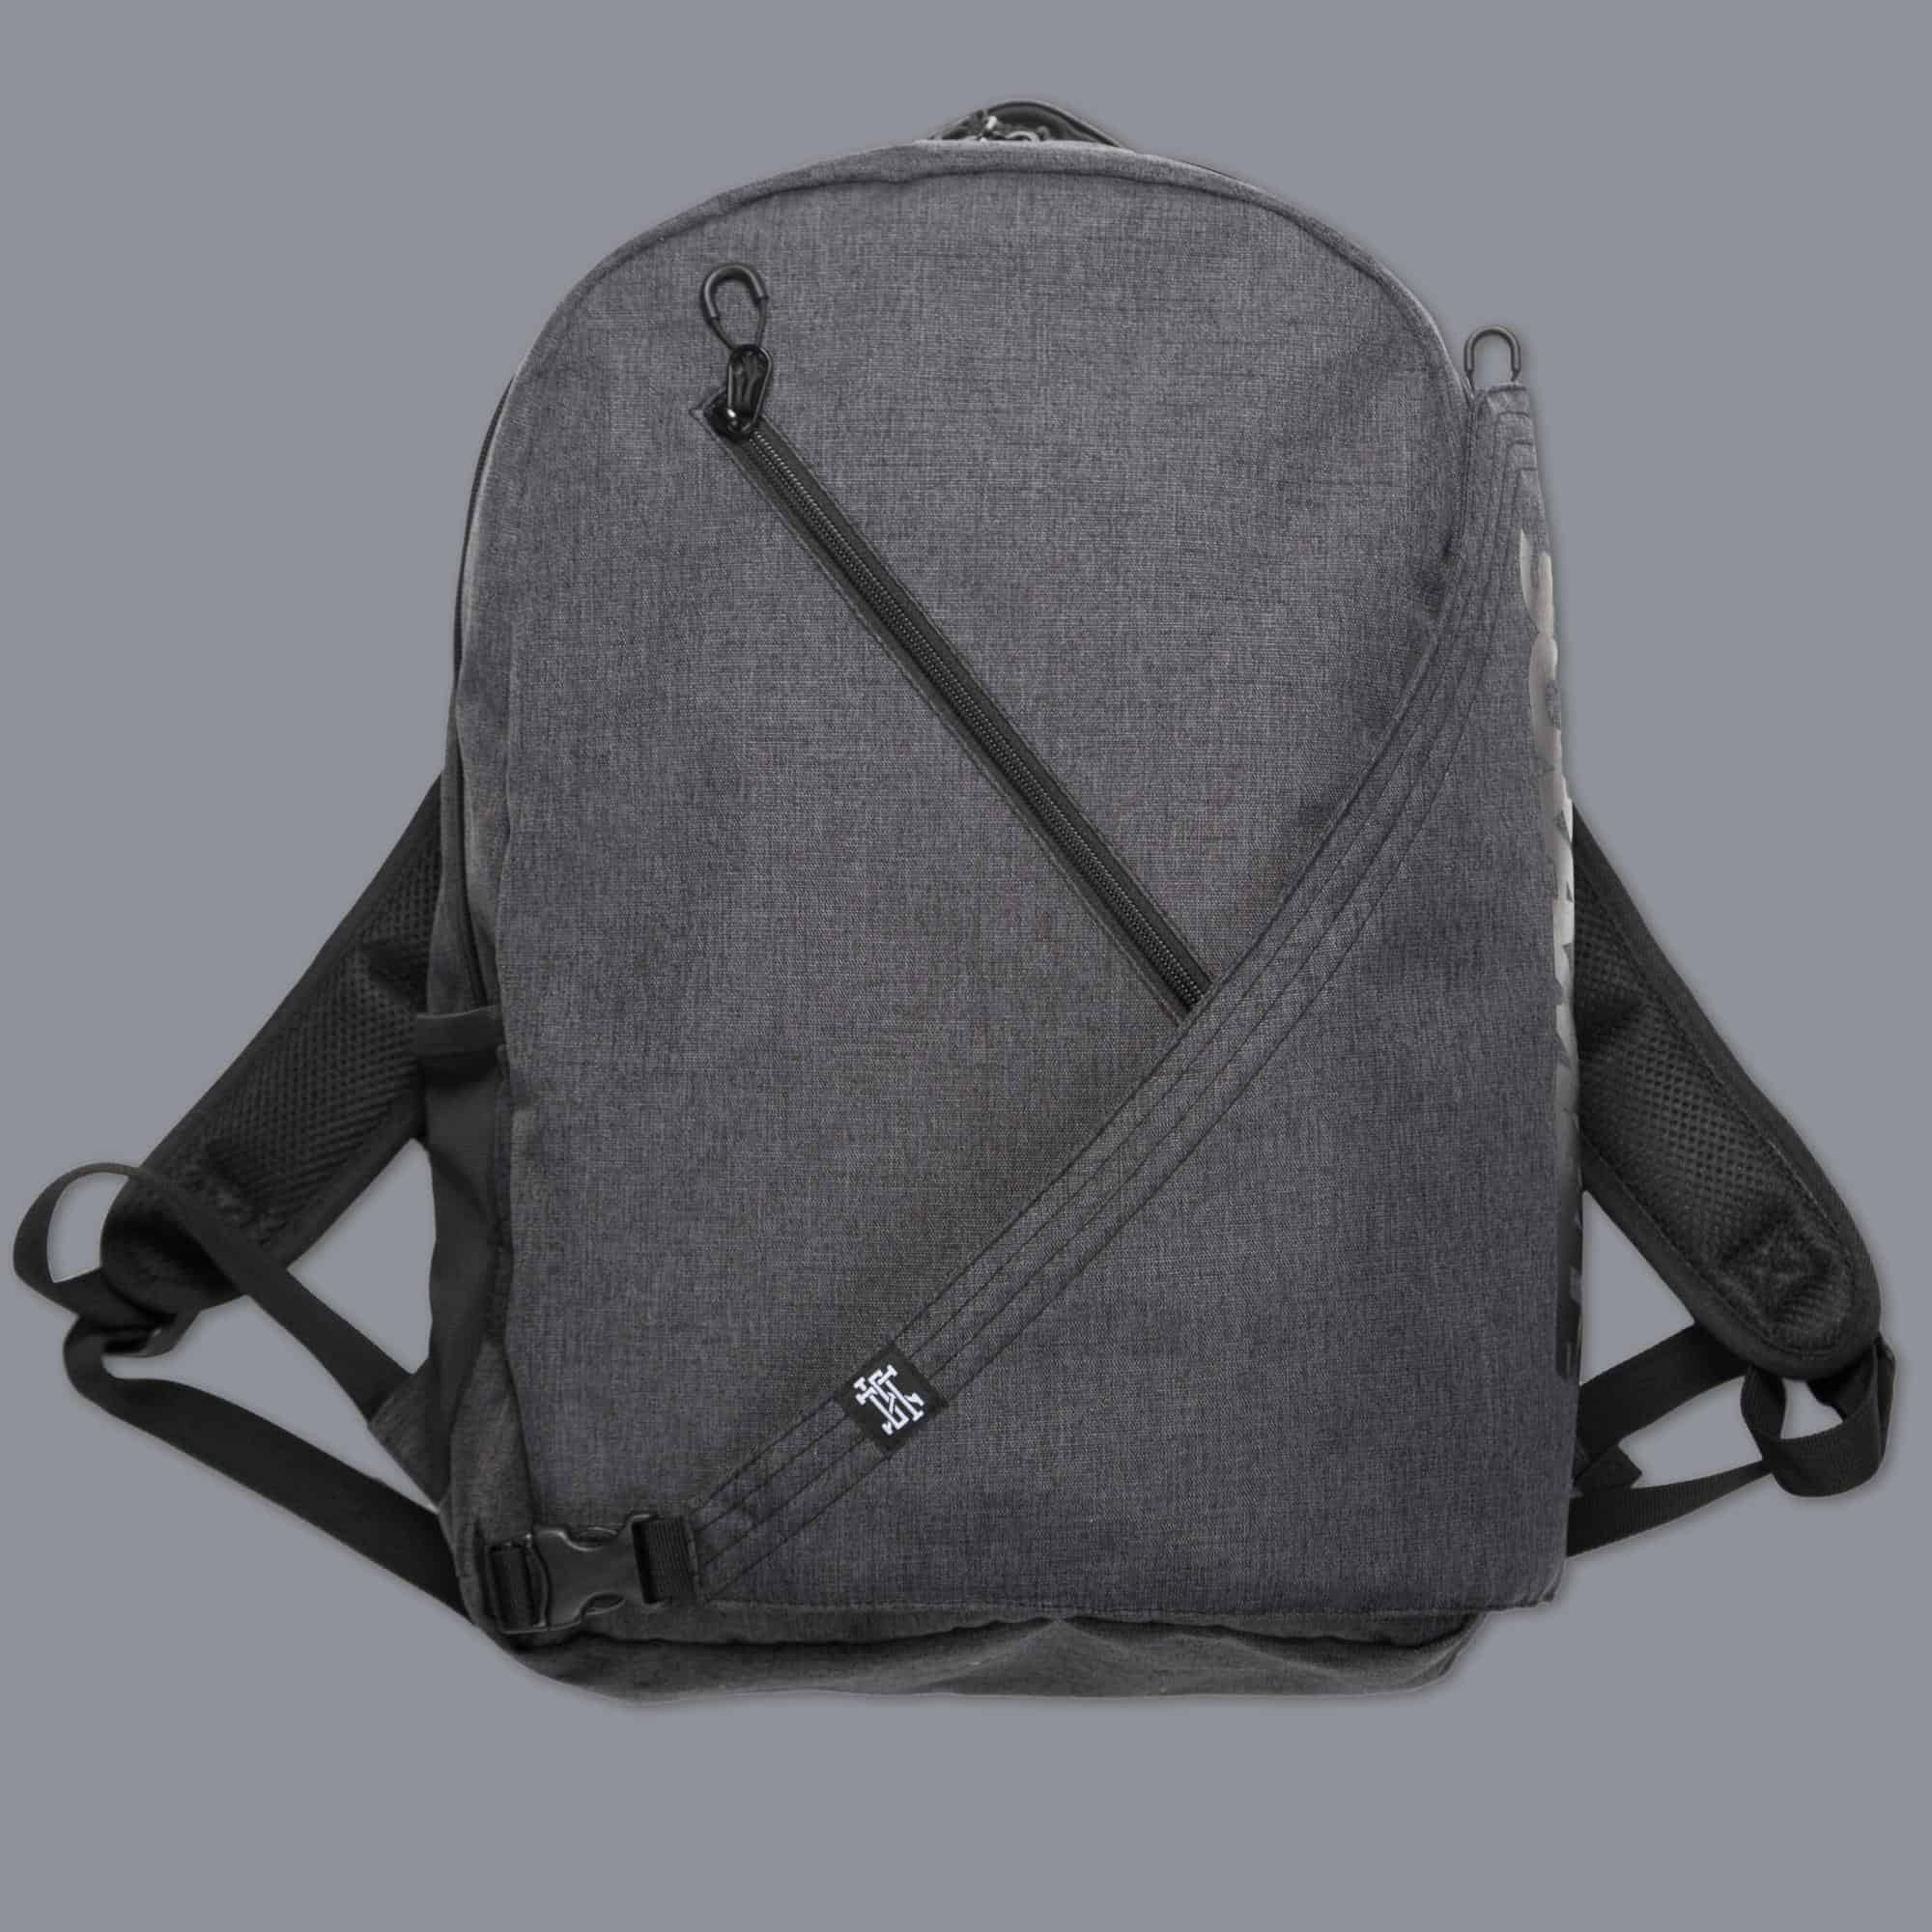 ed4426f912d07 Scramble Kimono Backpack Review - Is This The Coolest Backpack Ever